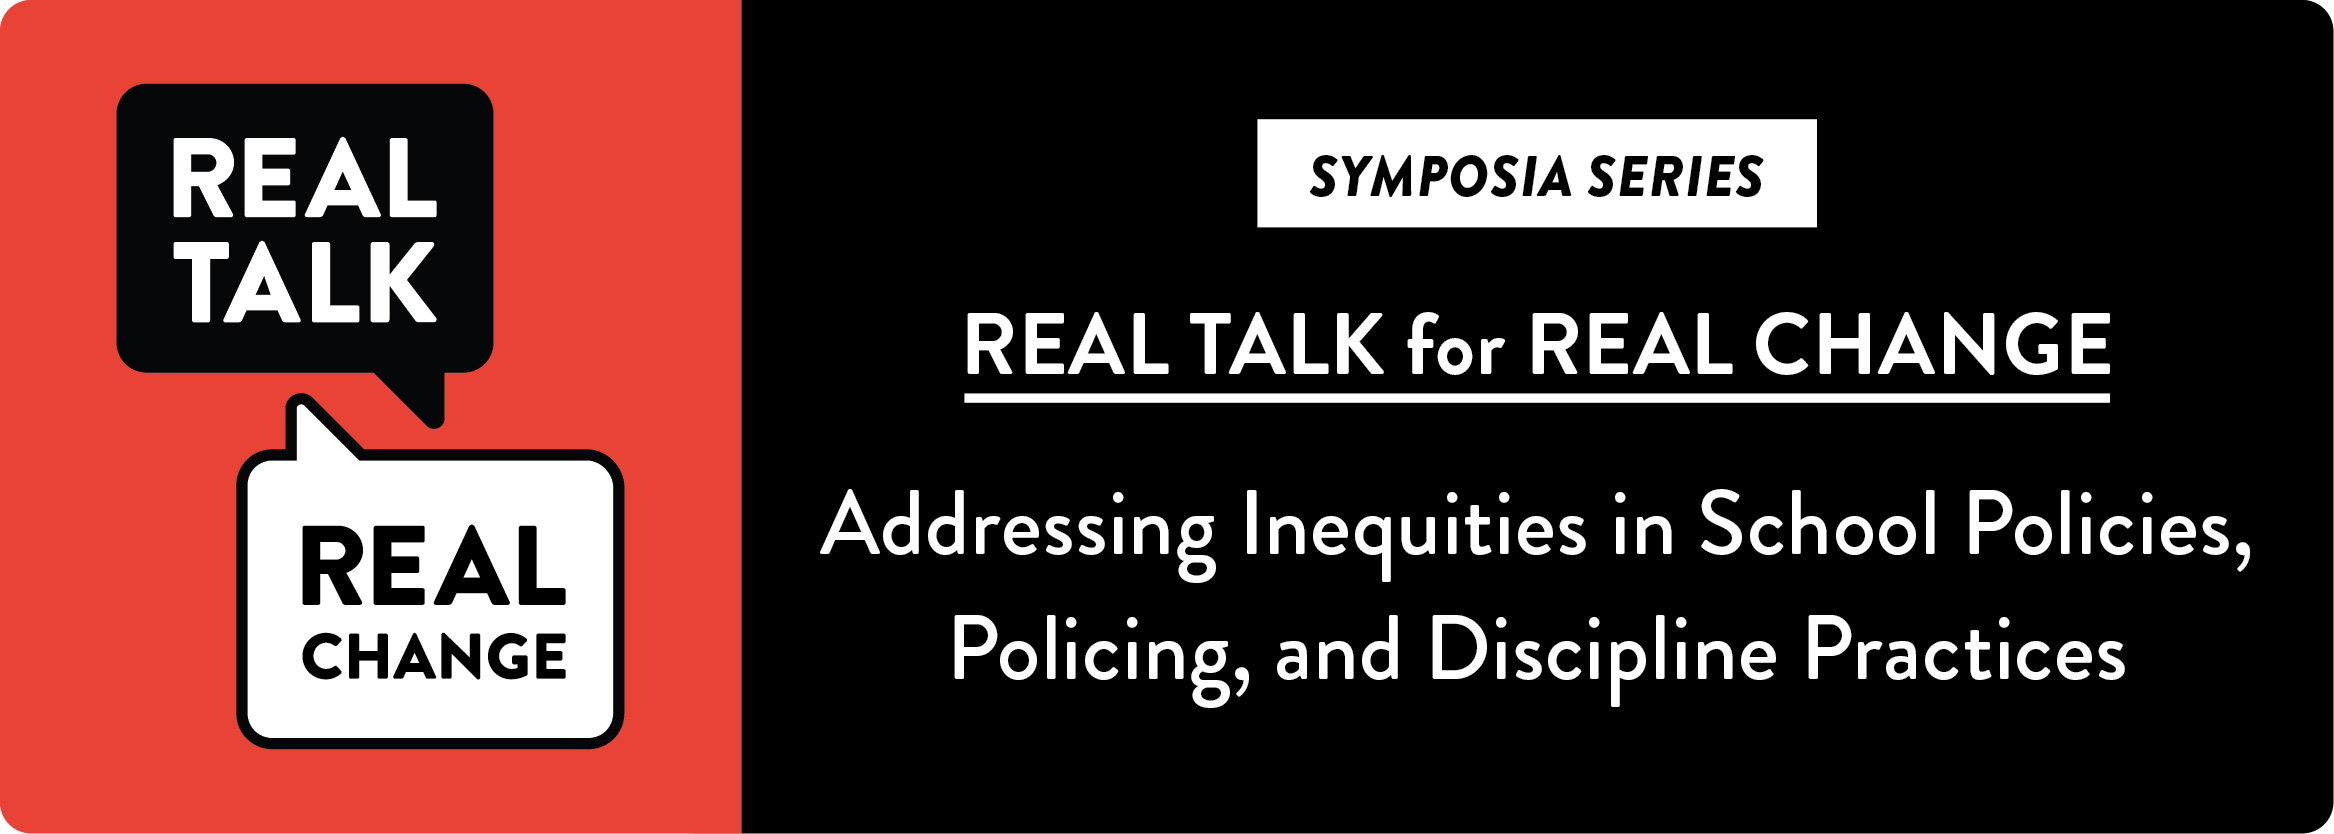 Real Talk for Real Change: Addressing Inequities in School Policies, Policing, and Discipline Practices